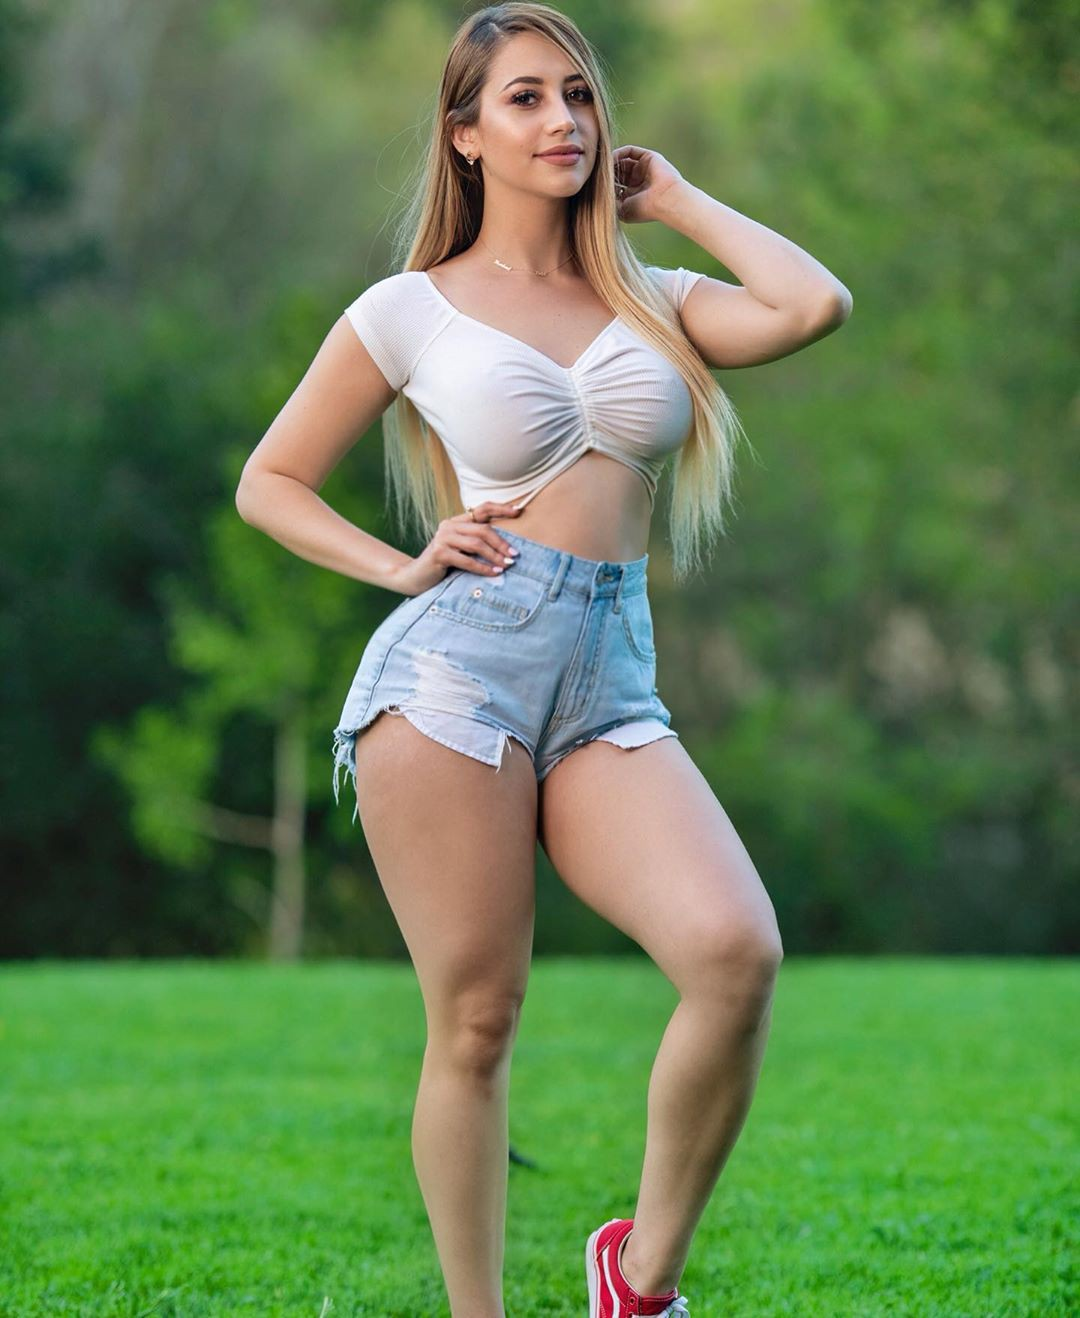 Mariam Olivera jean short, shorts outfit instagram, hot girls thighs